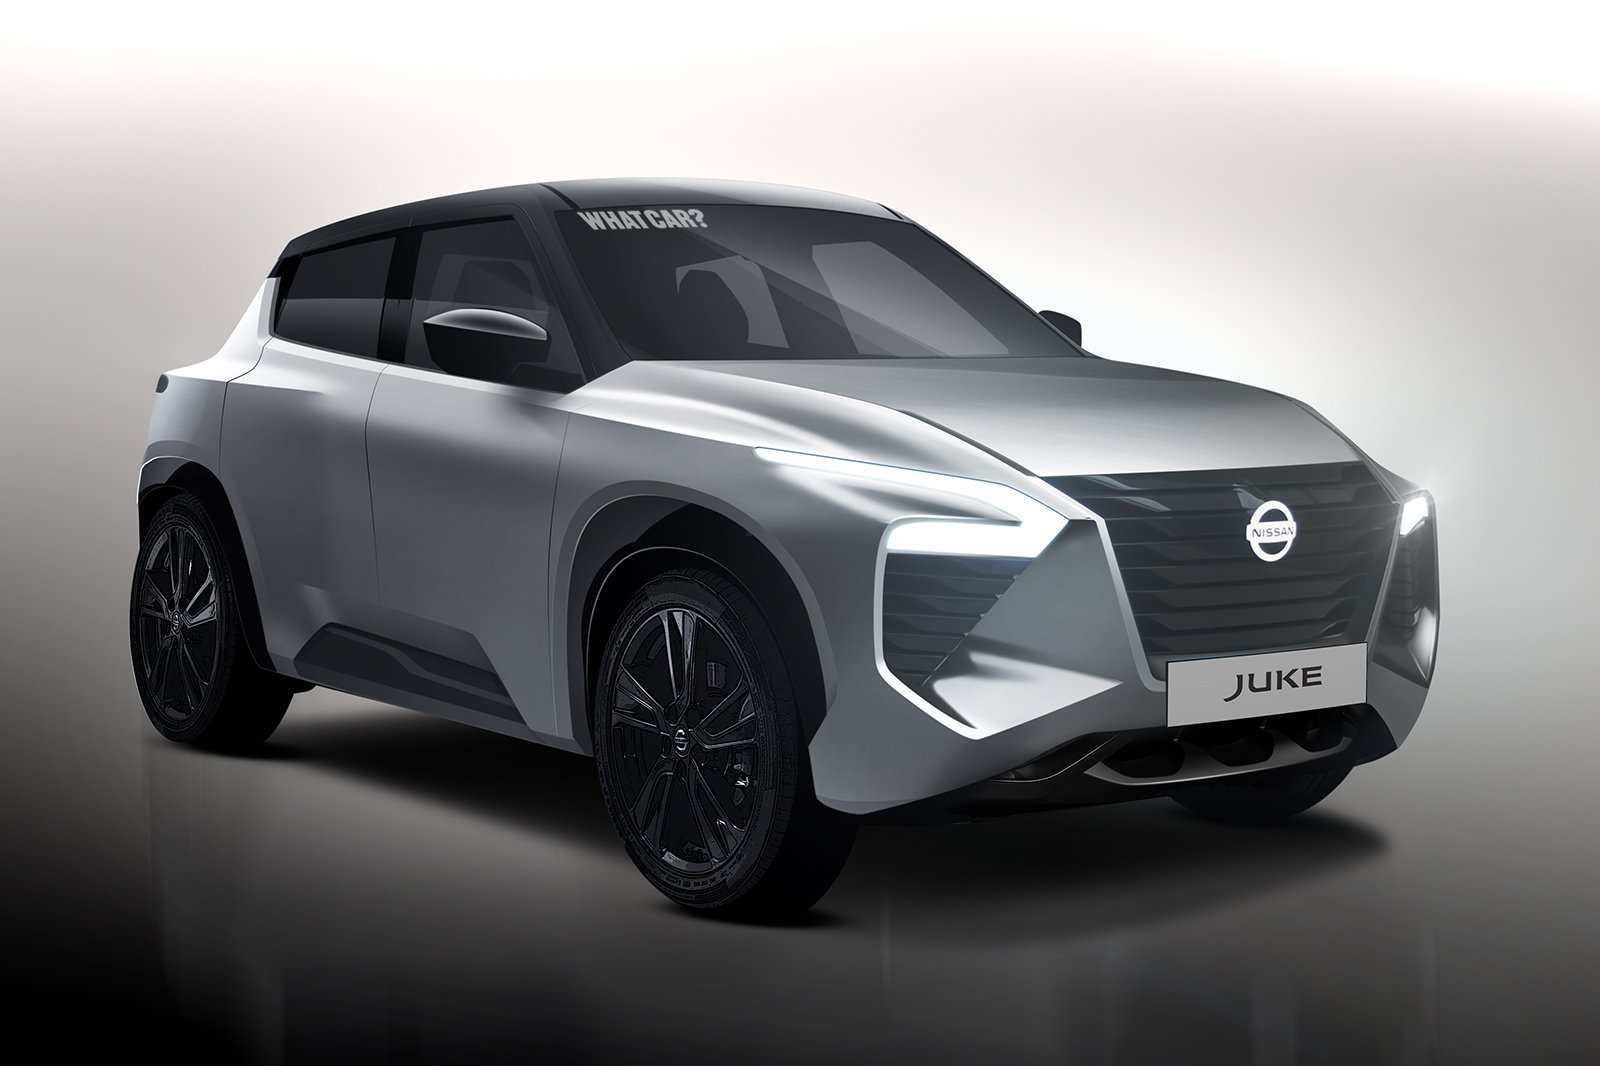 67 All New Nissan Juke 2019 Release Date Redesign And Concept